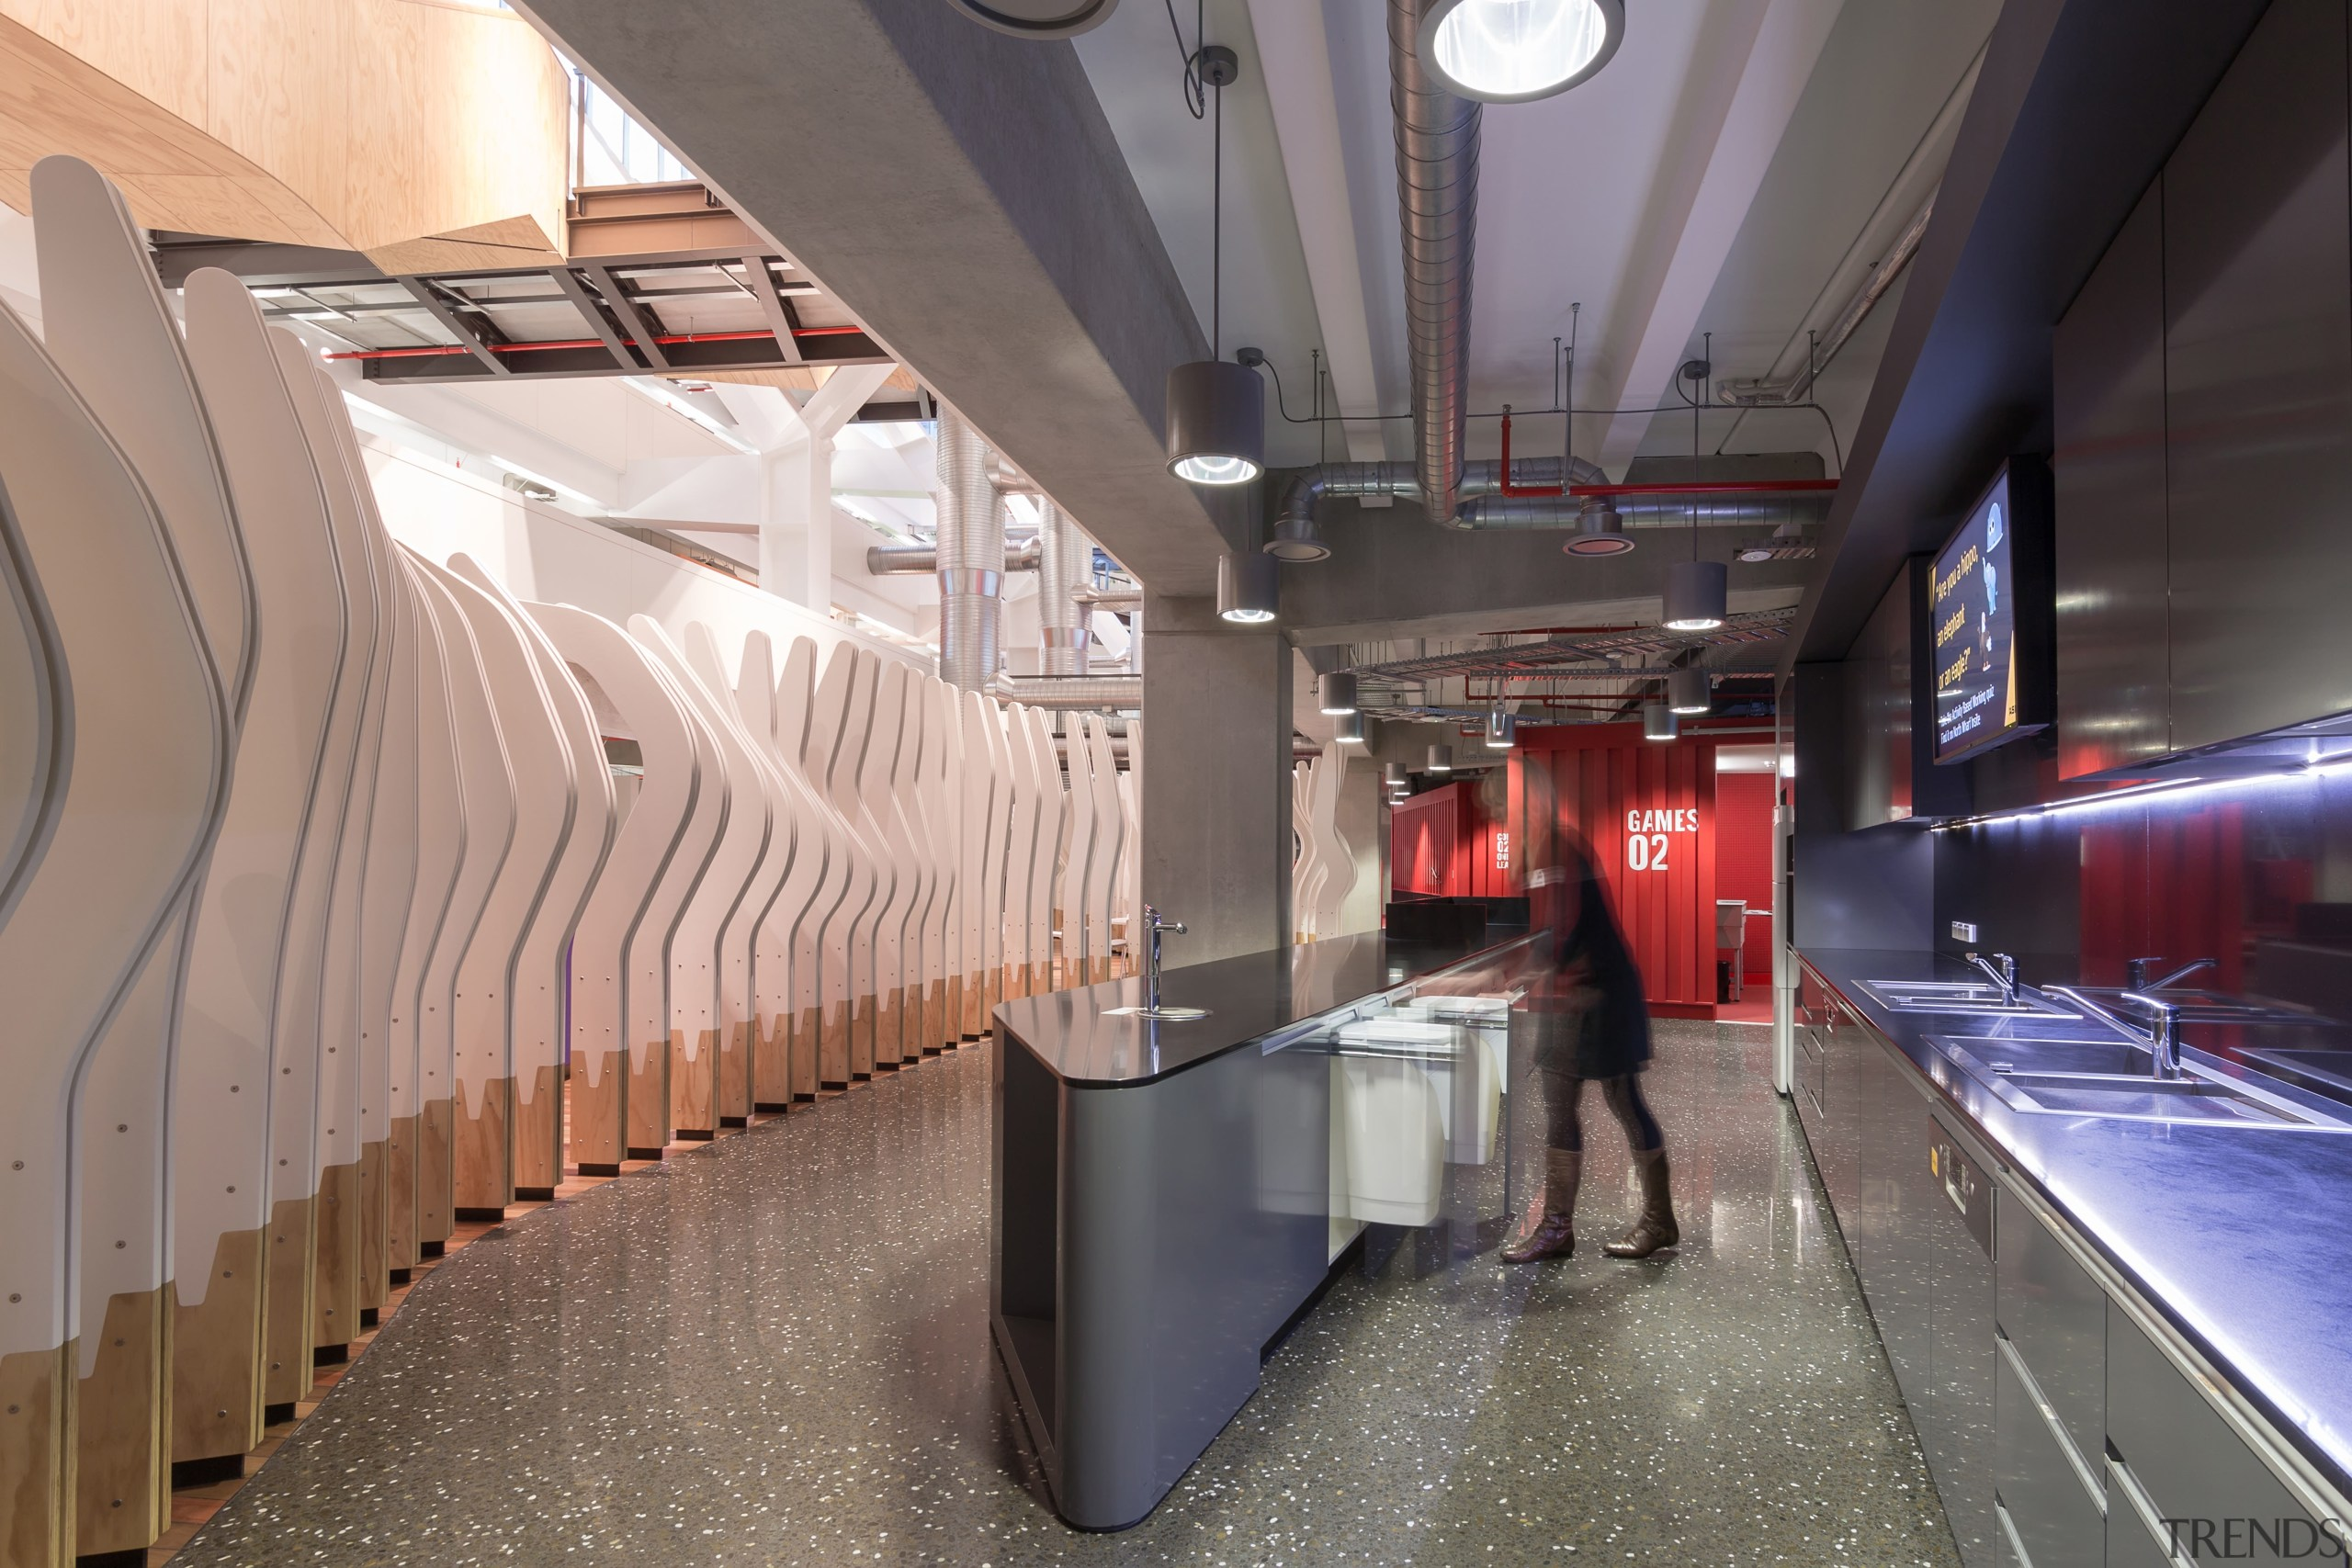 Hideaway Bins proved the ideal recycling solution for architecture, interior design, metro station, public transport, gray